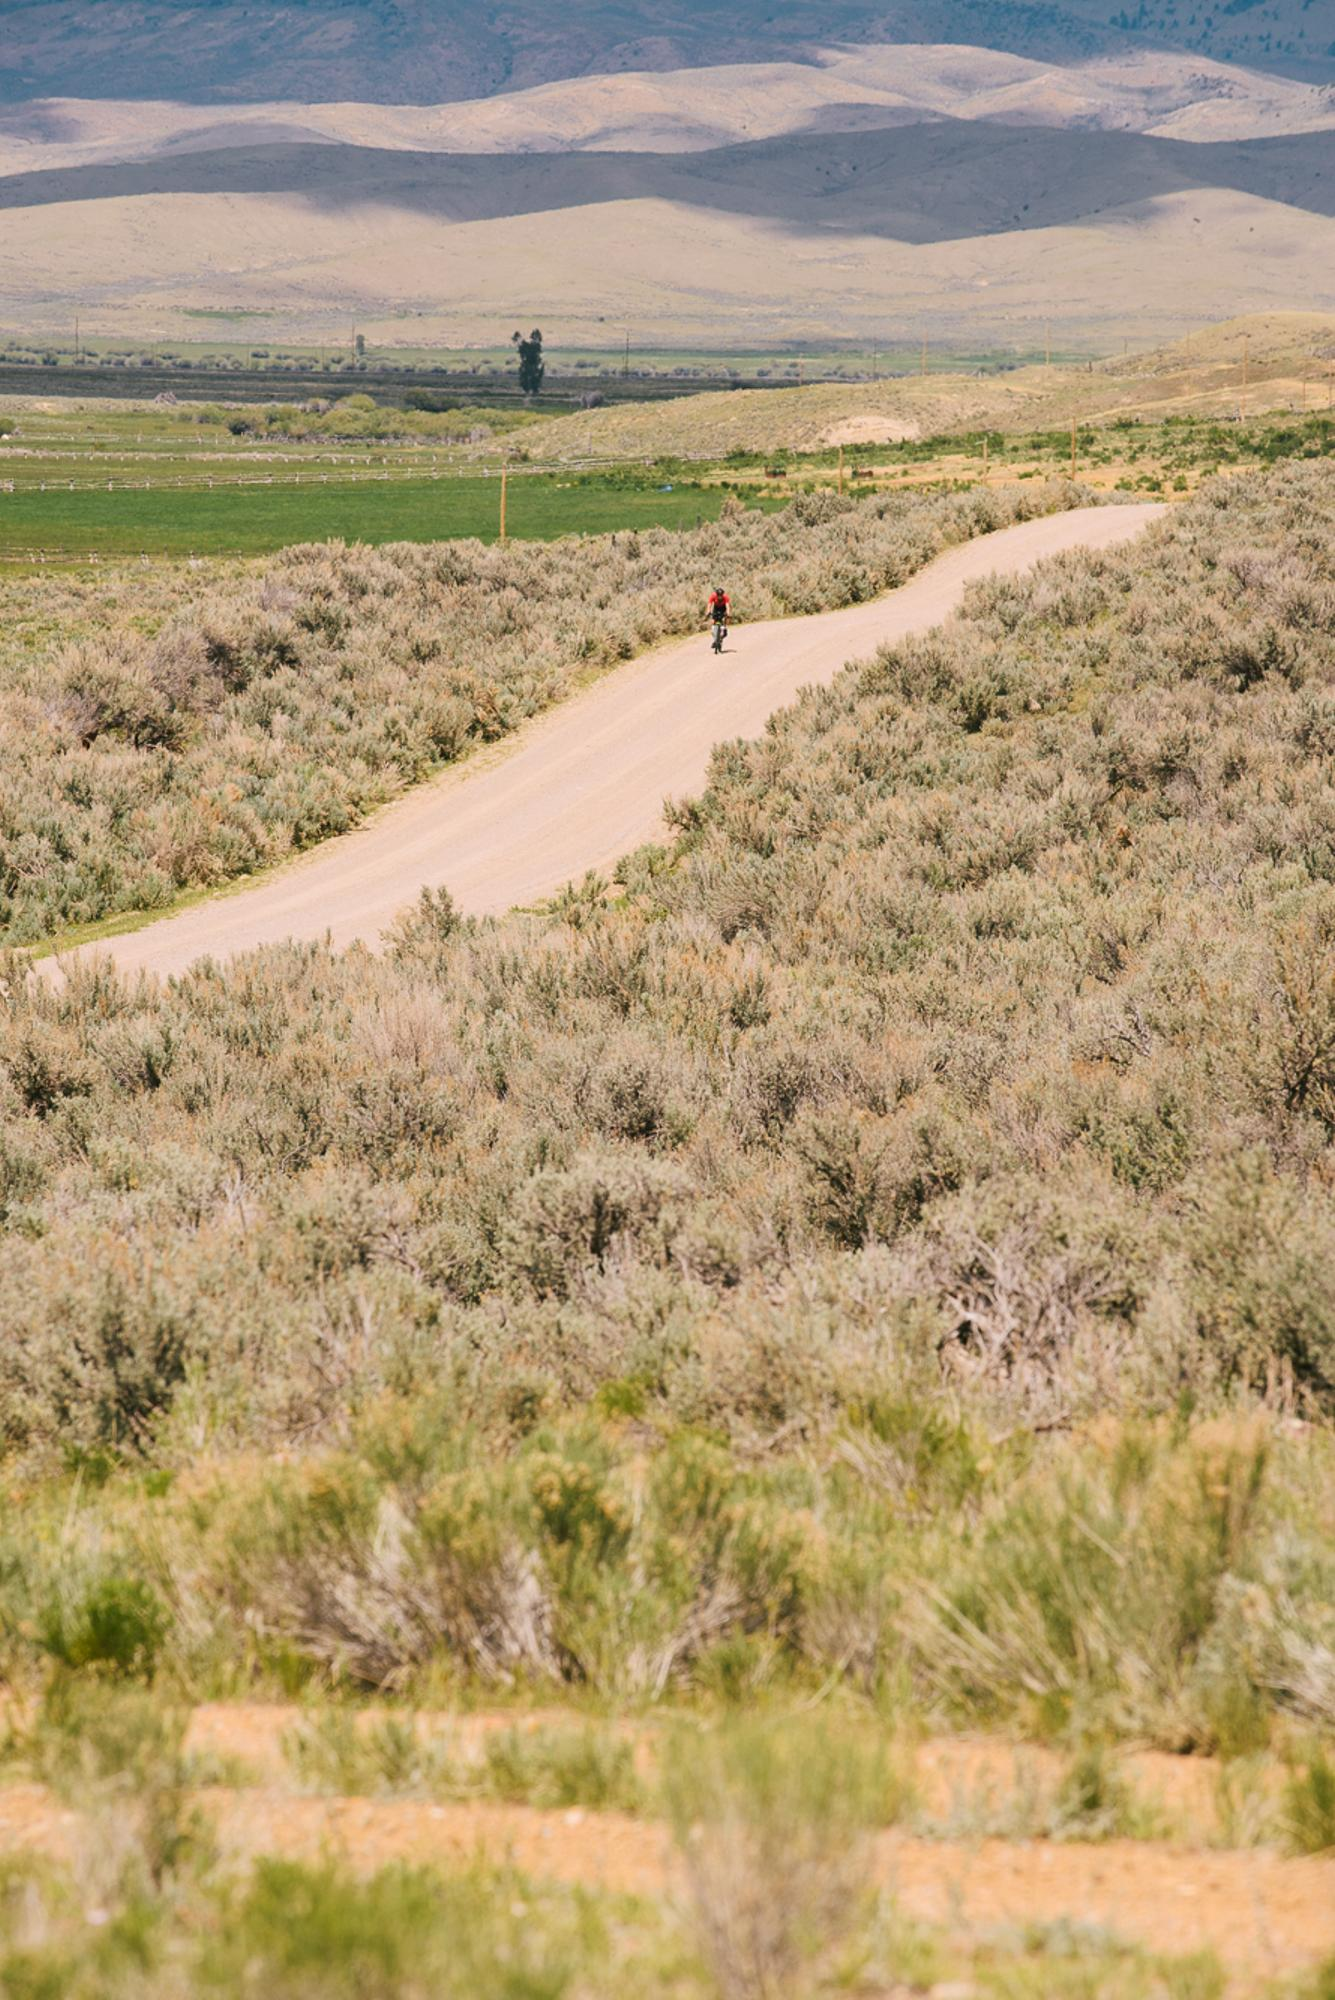 Josh Ibbet on the sagebrush rollers (Spencer Harding)